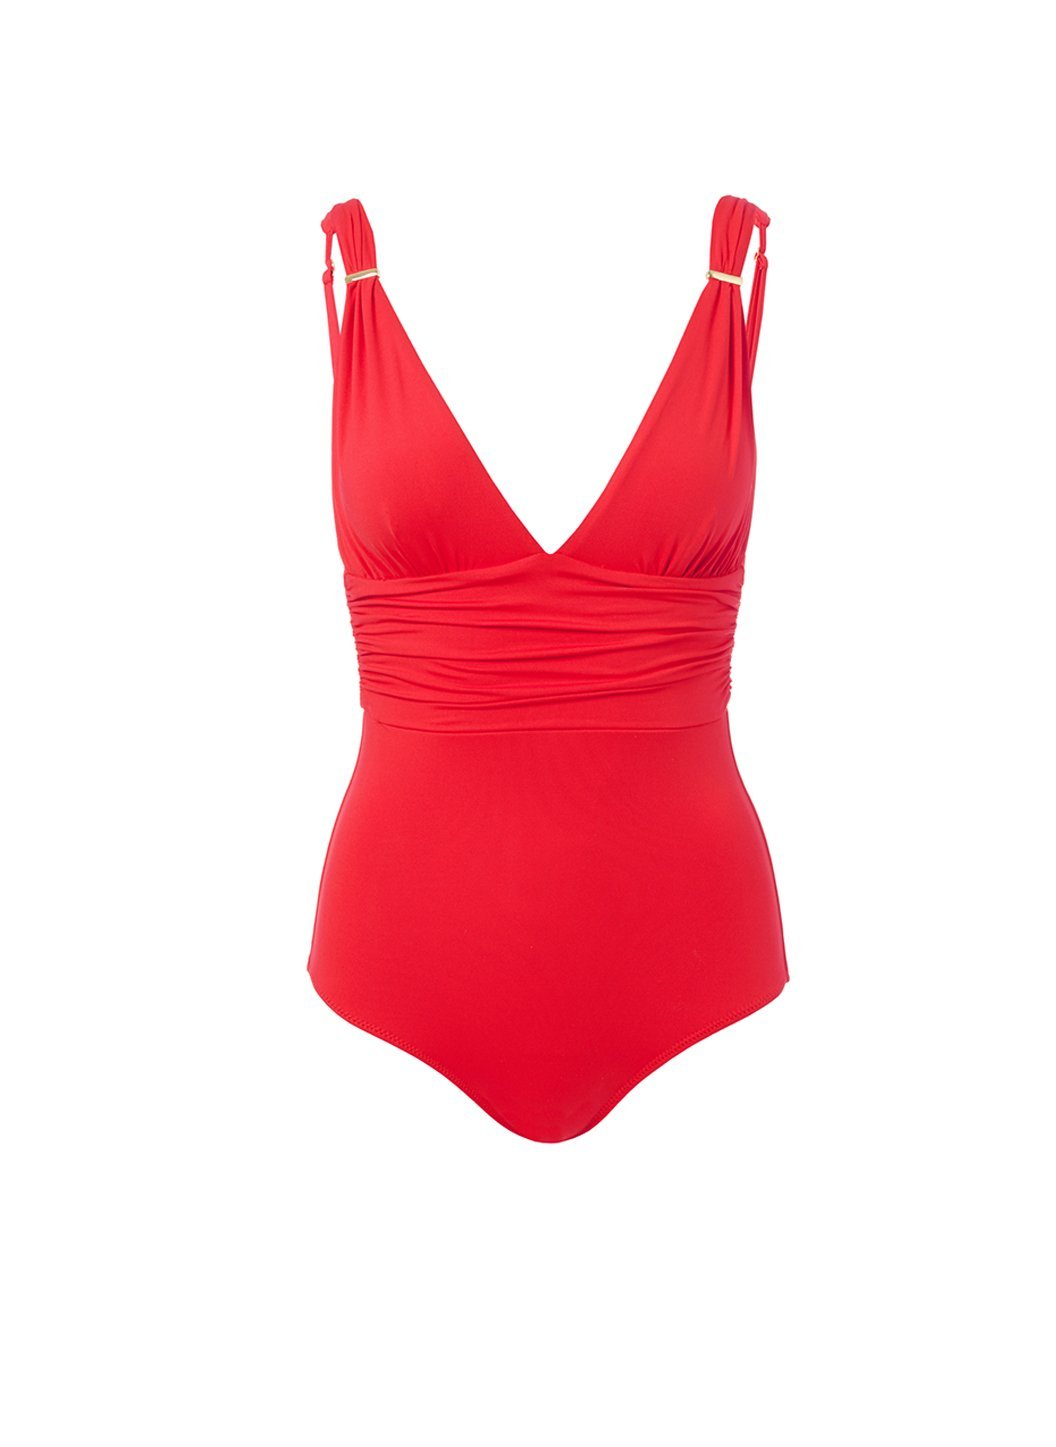 panarea red classic overtheshoulder ruched onepiece swimsuit 2019